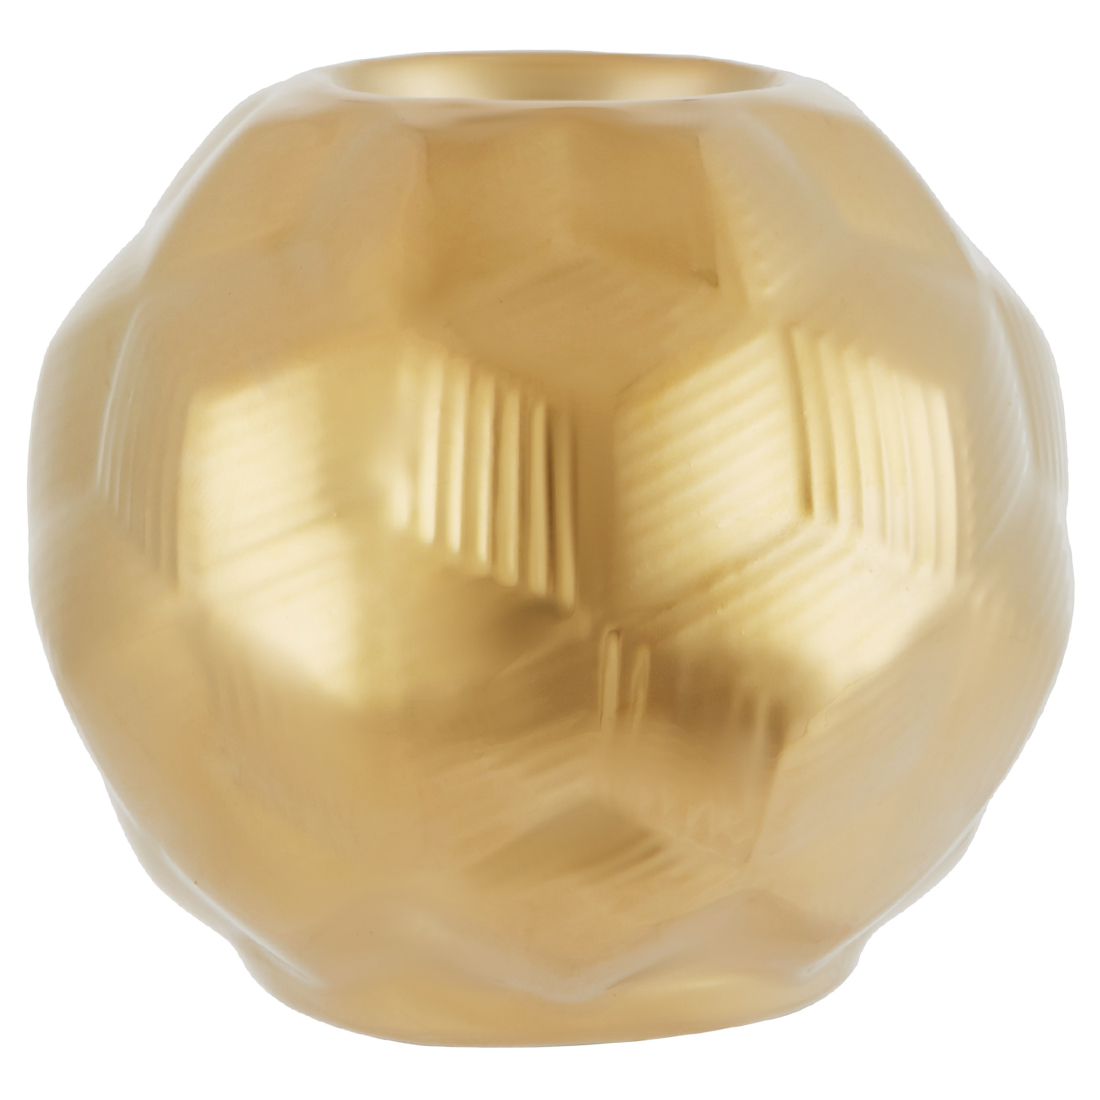 Blake Sphere C/H Shny Gld Sm M18025 Ceramic Table D in Gold Colour by Living Essence